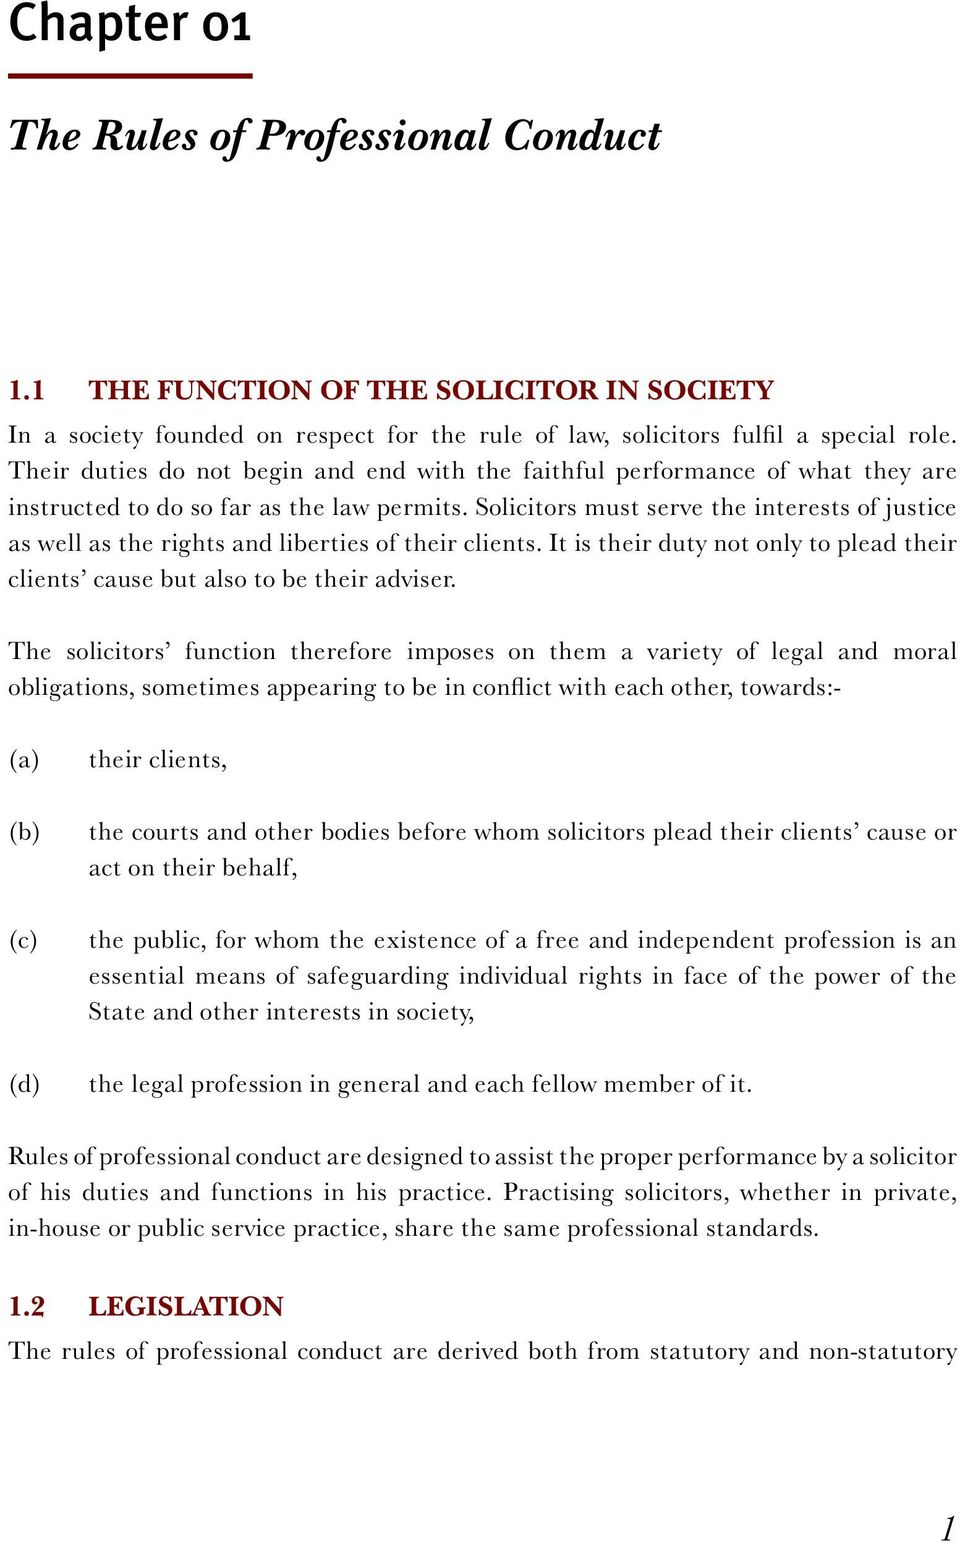 Solicitors must serve the interests of justice as well as the rights and liberties of their clients. It is their duty not only to plead their clients cause but also to be their adviser.